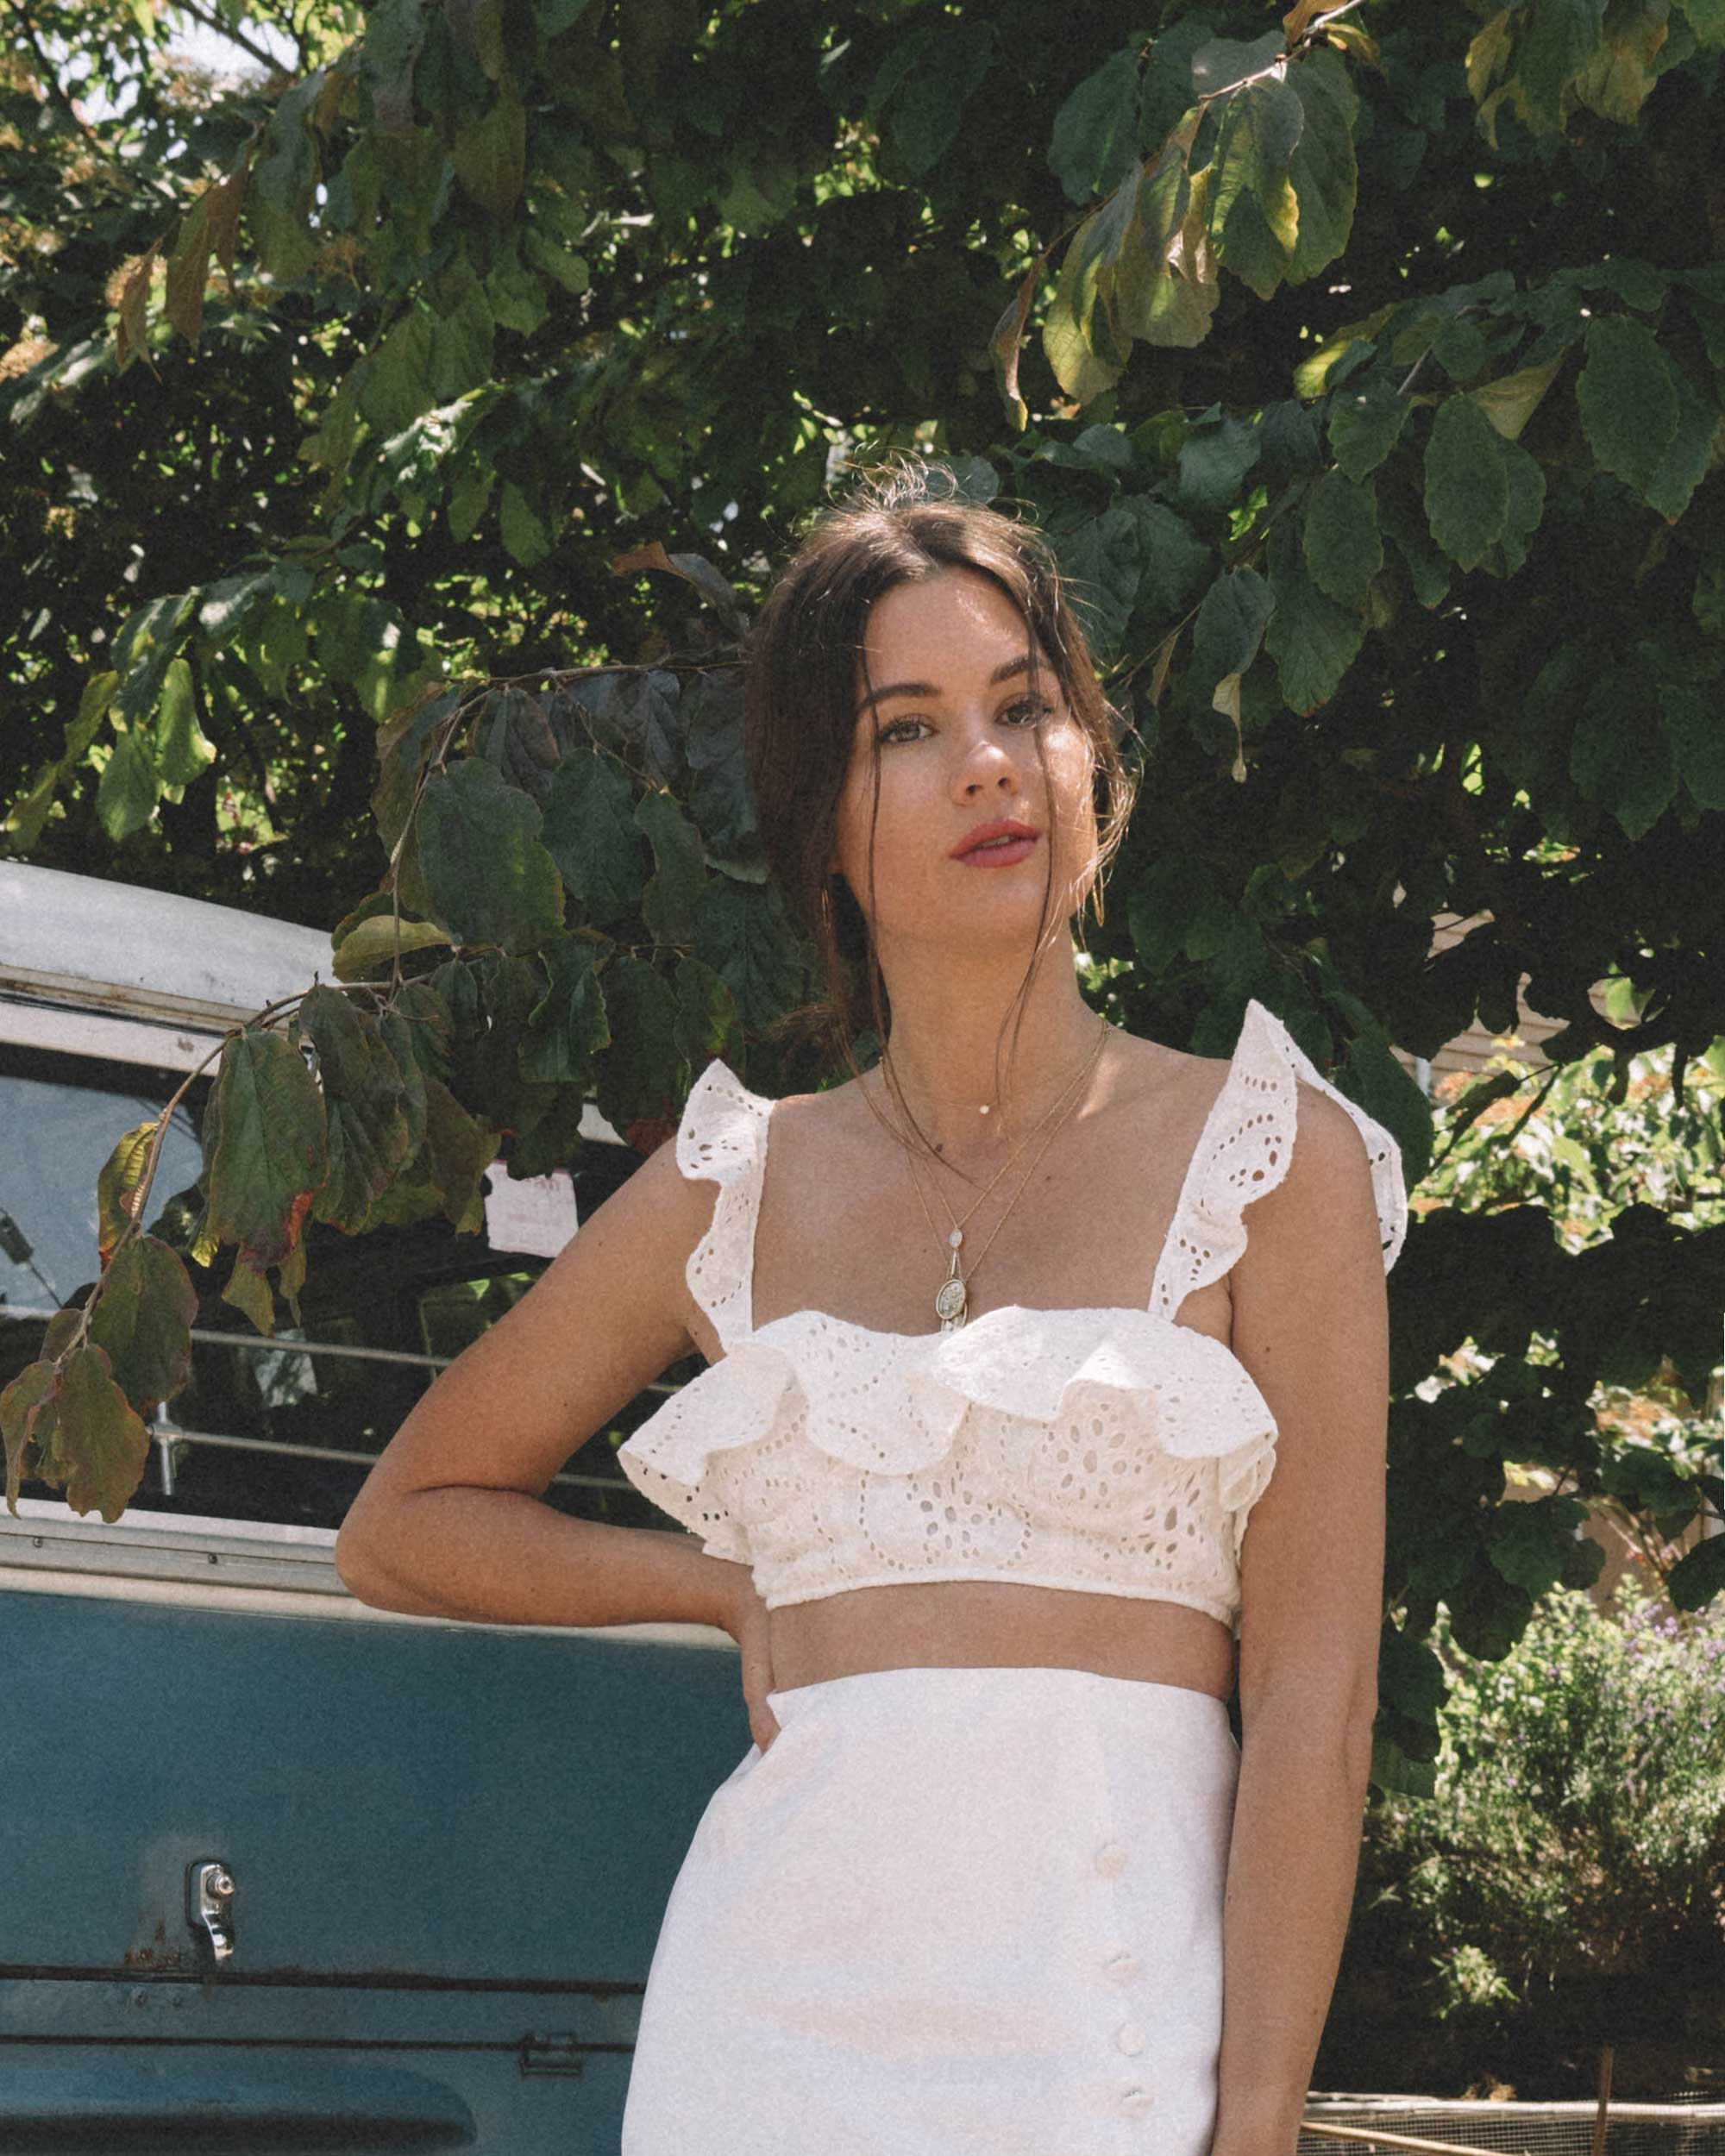 Eyelets & Silk - Beating the heat with this white summer outfit featuring satin bias cut skirt and Lovers + Friends Charlotte white eyelet bralette in Seattle.